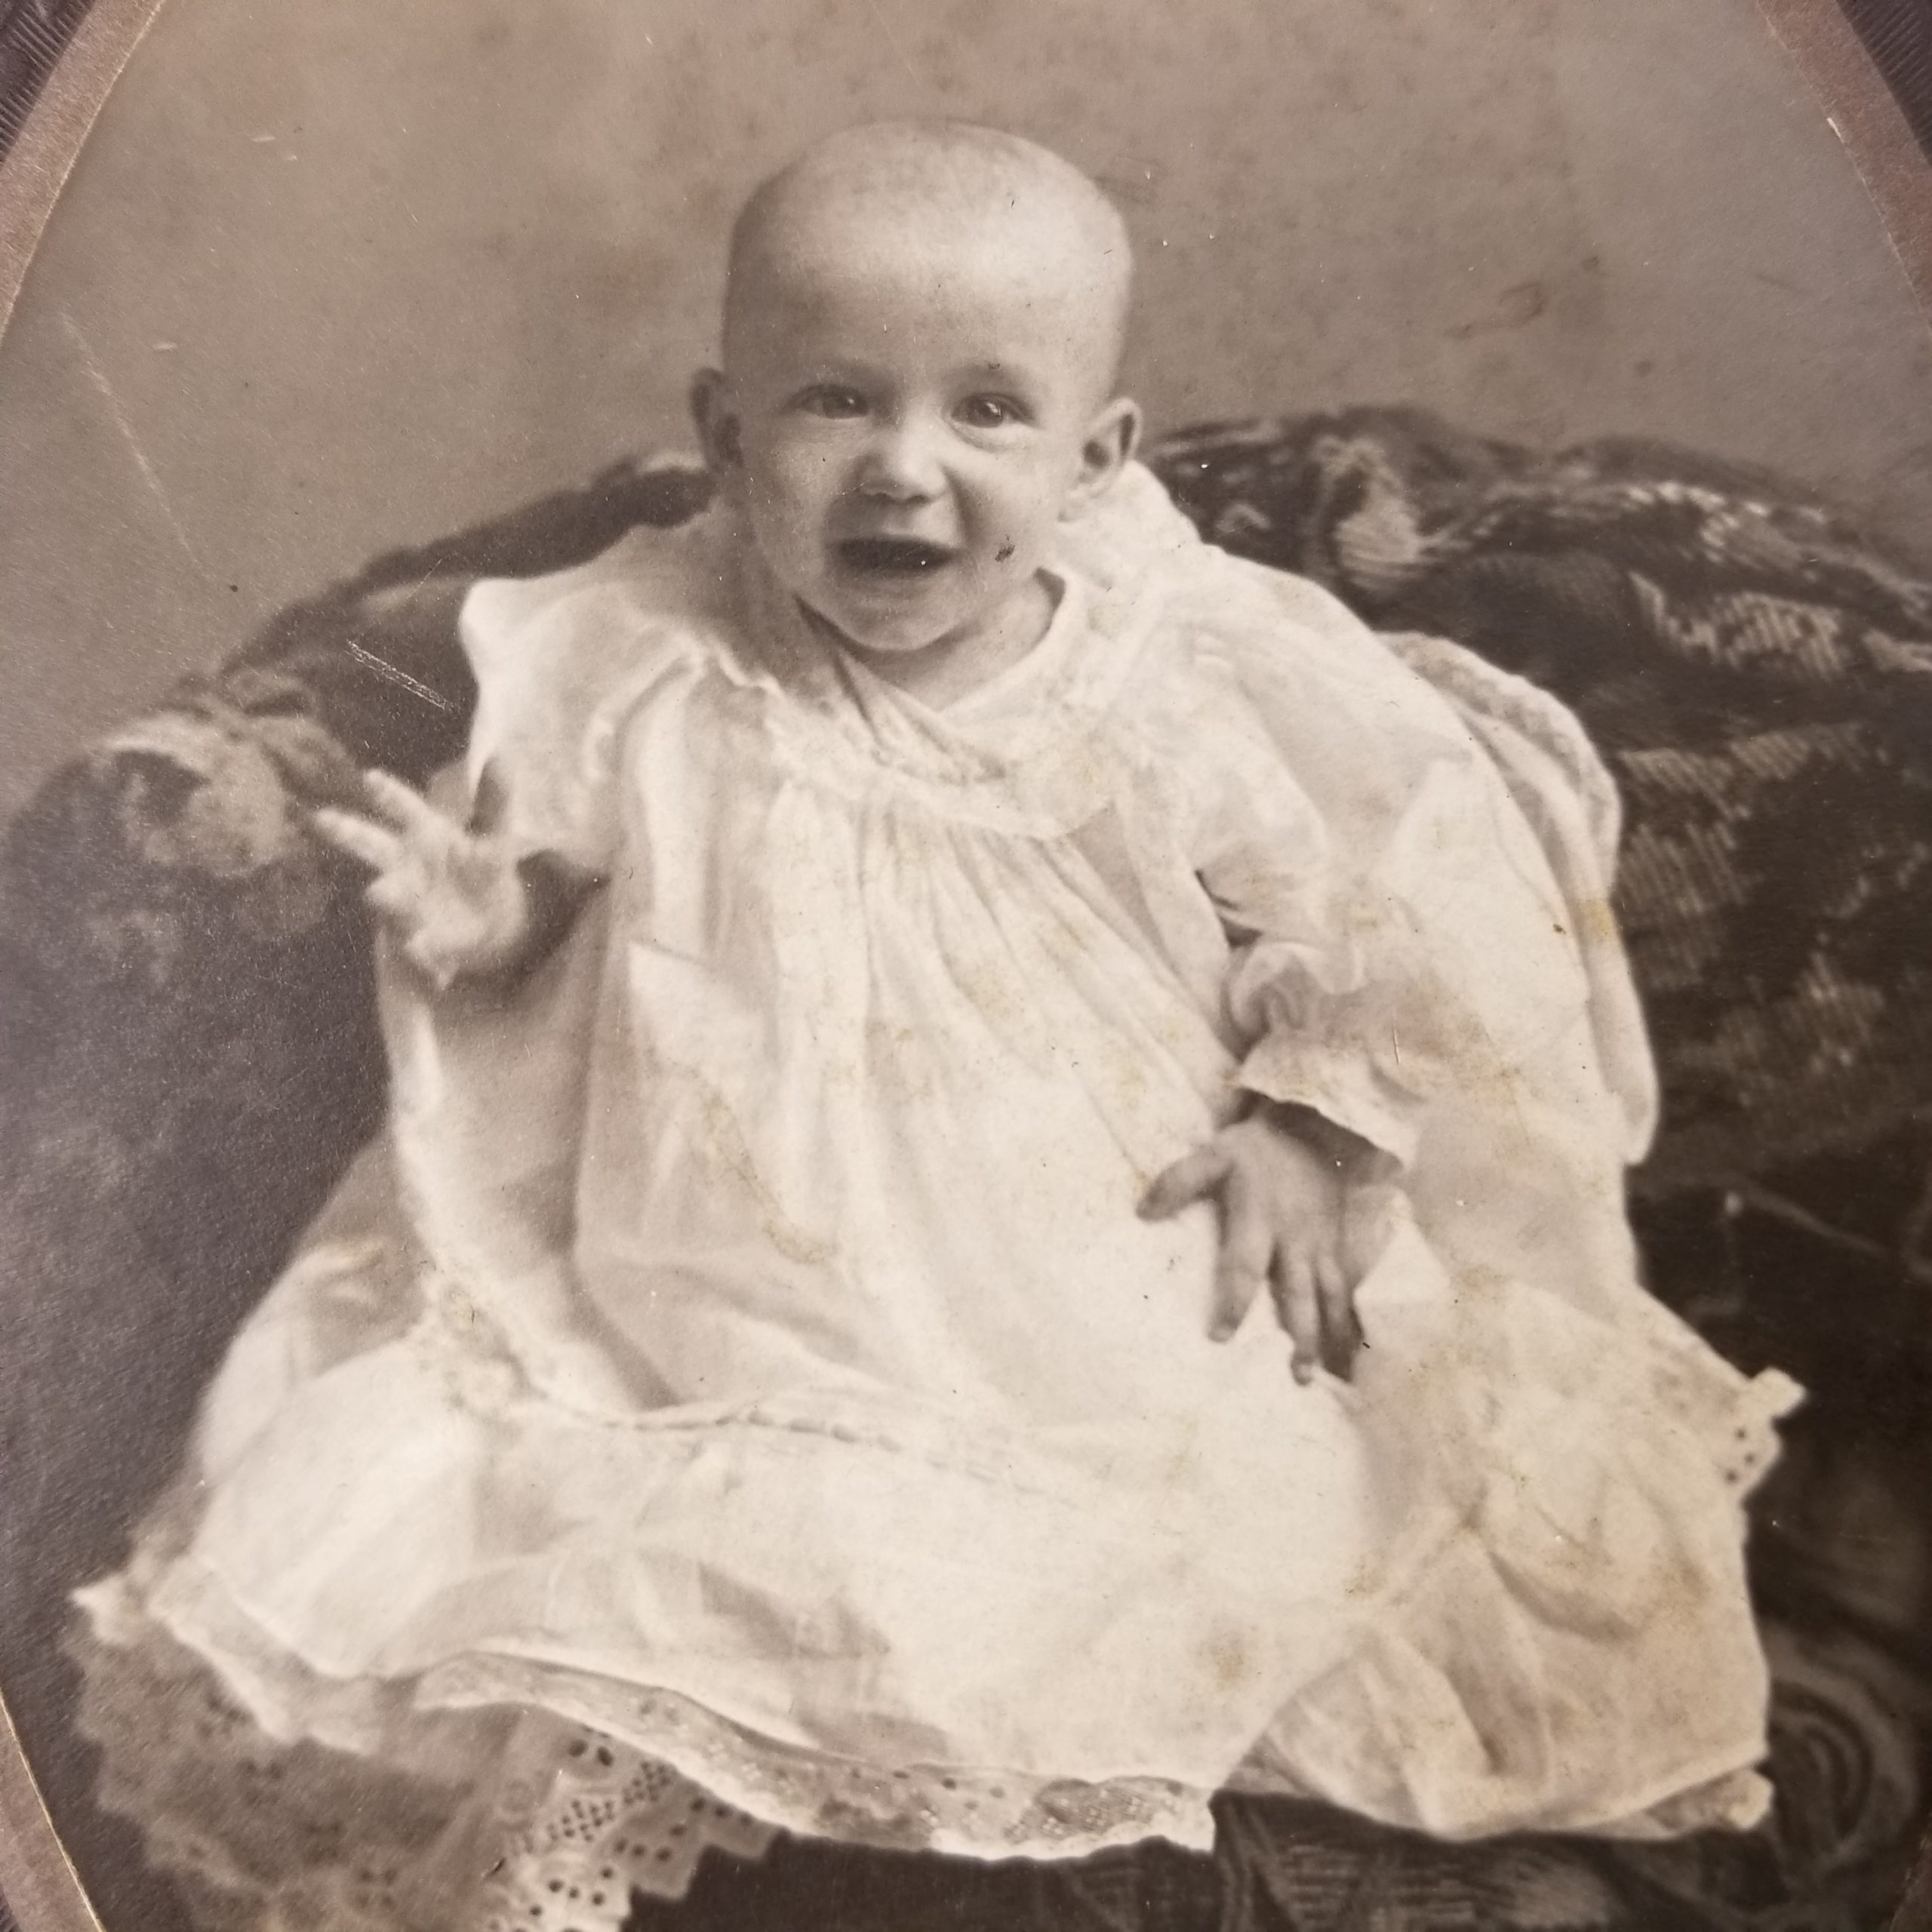 Old Antique Cabinet Photo Card Happy Smiling Baby White Dress Black & White Photograph Potomac, IL